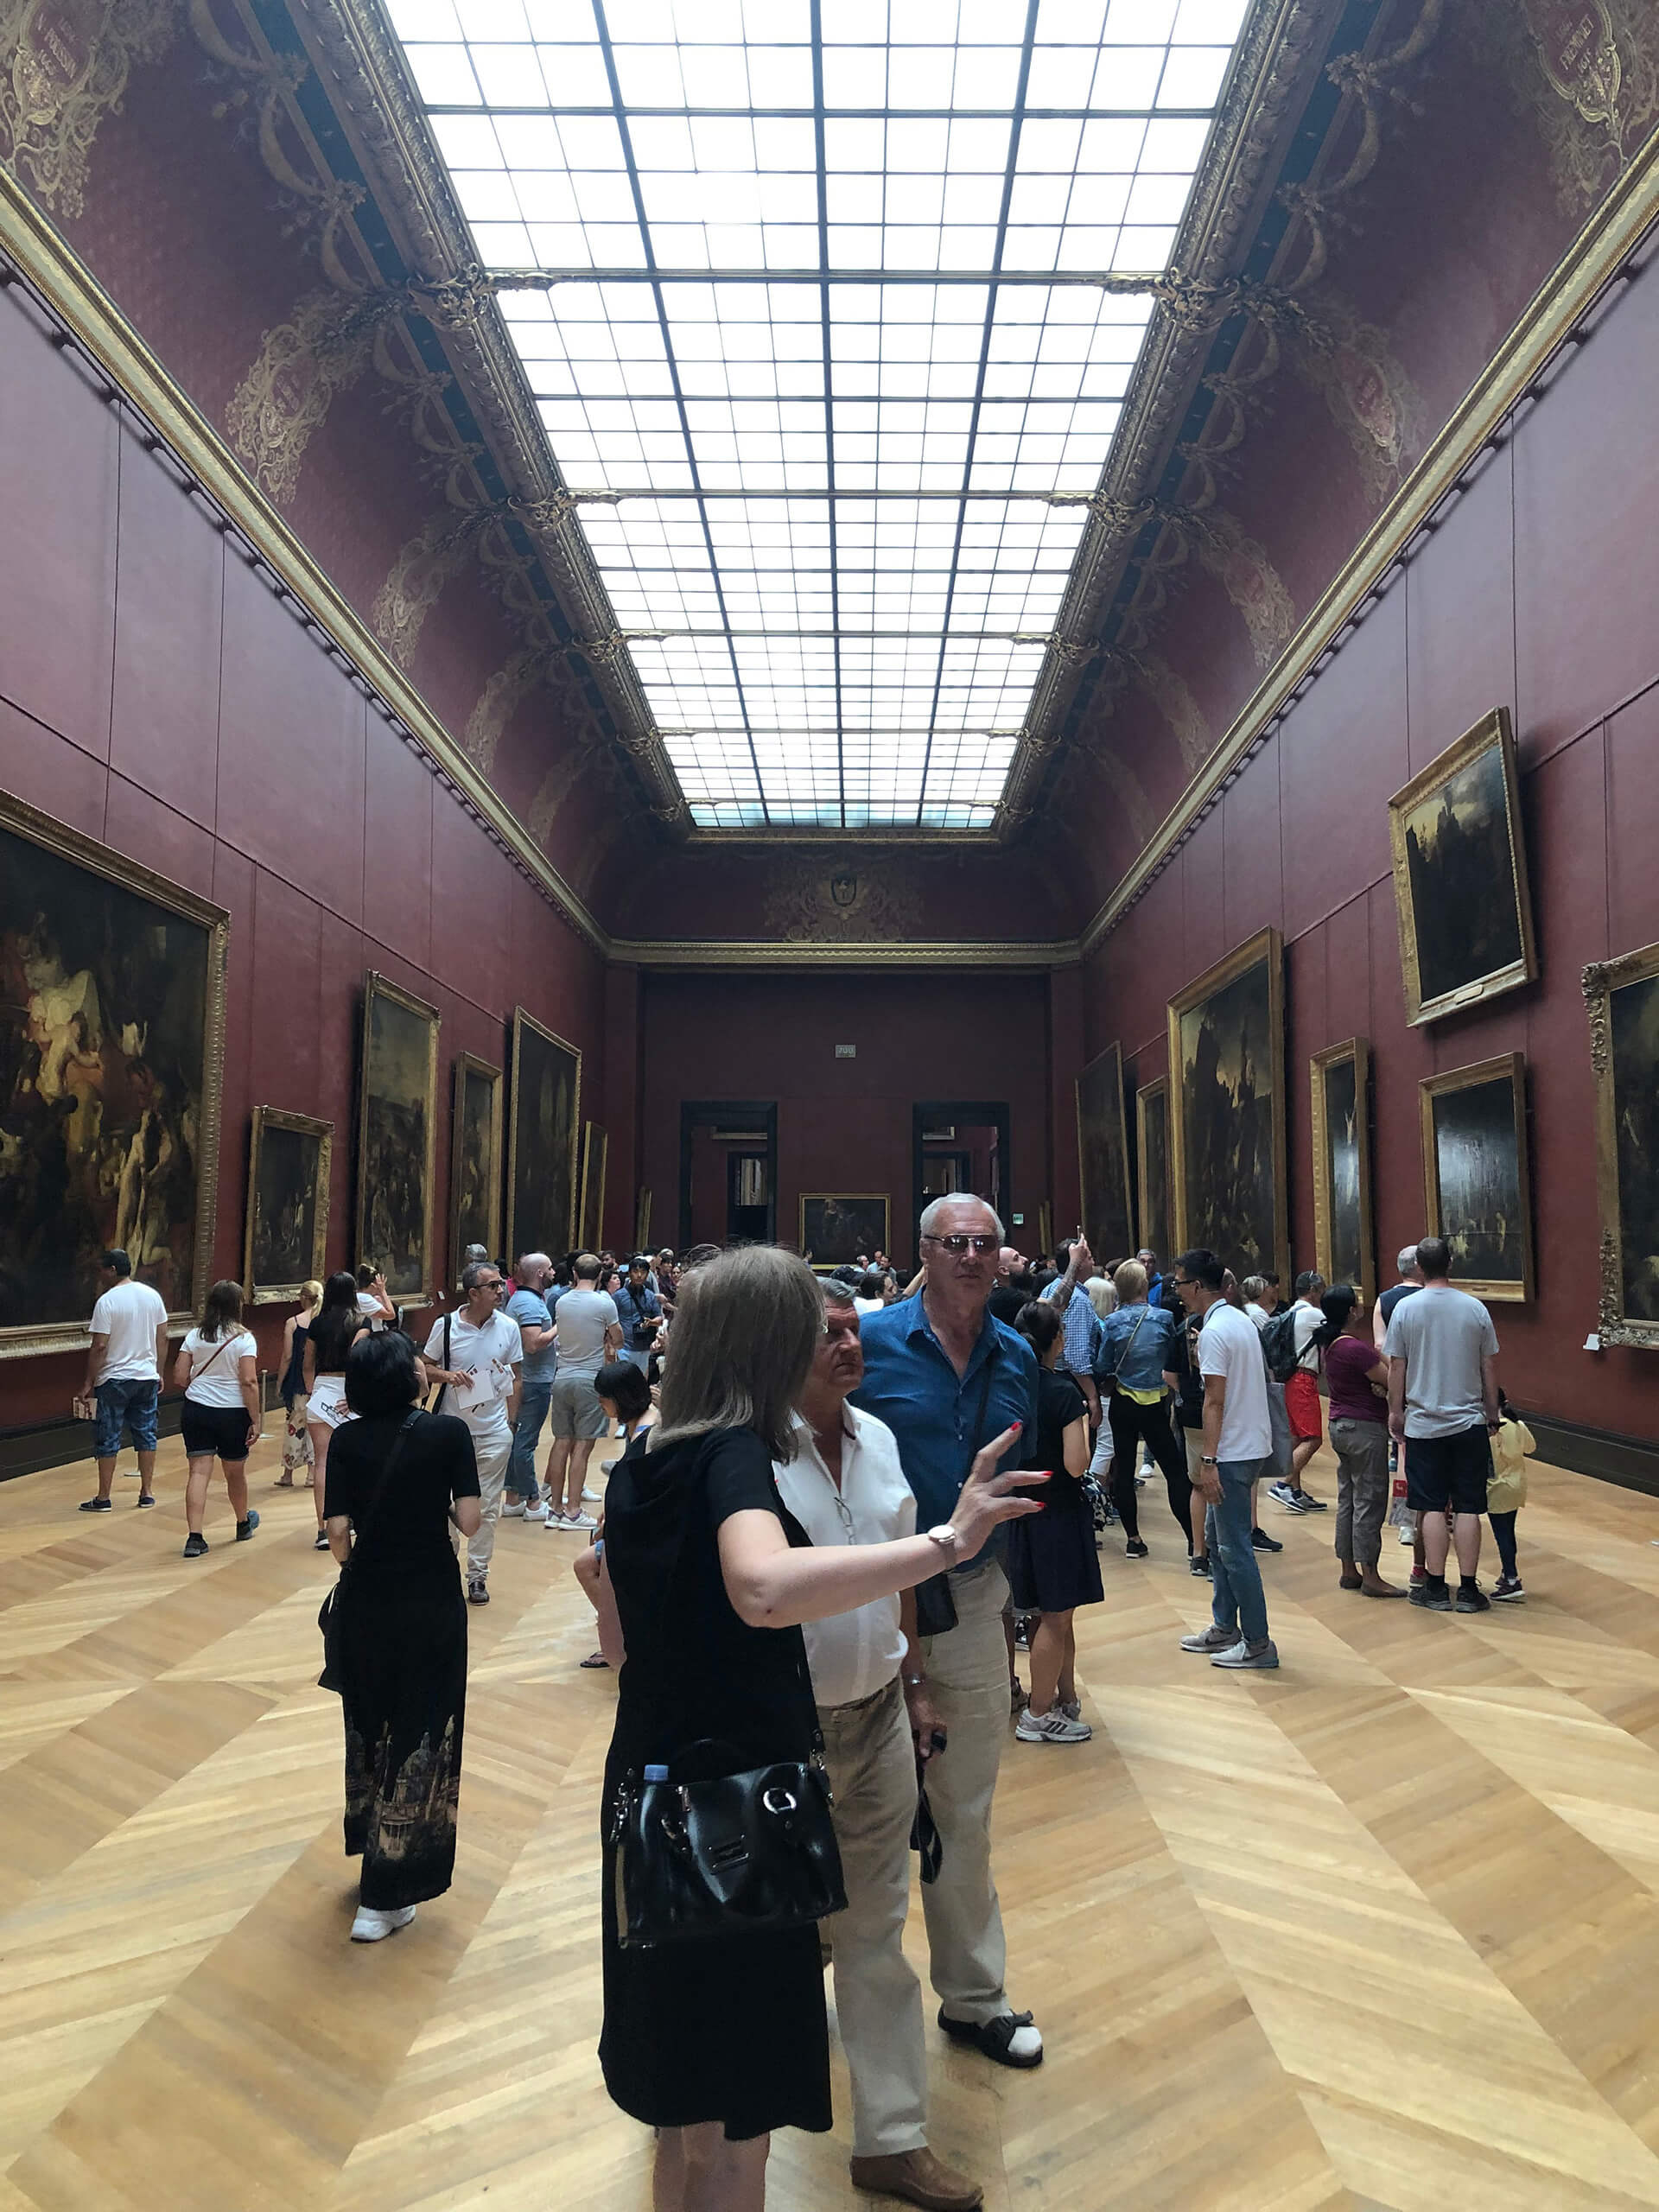 Interiors of Louvre Museum, Paris | International Museum Day 2020 (May 18) theme 'Museums for Equality: Diversity and Inclusion' | International Council of Museums | STIRworld